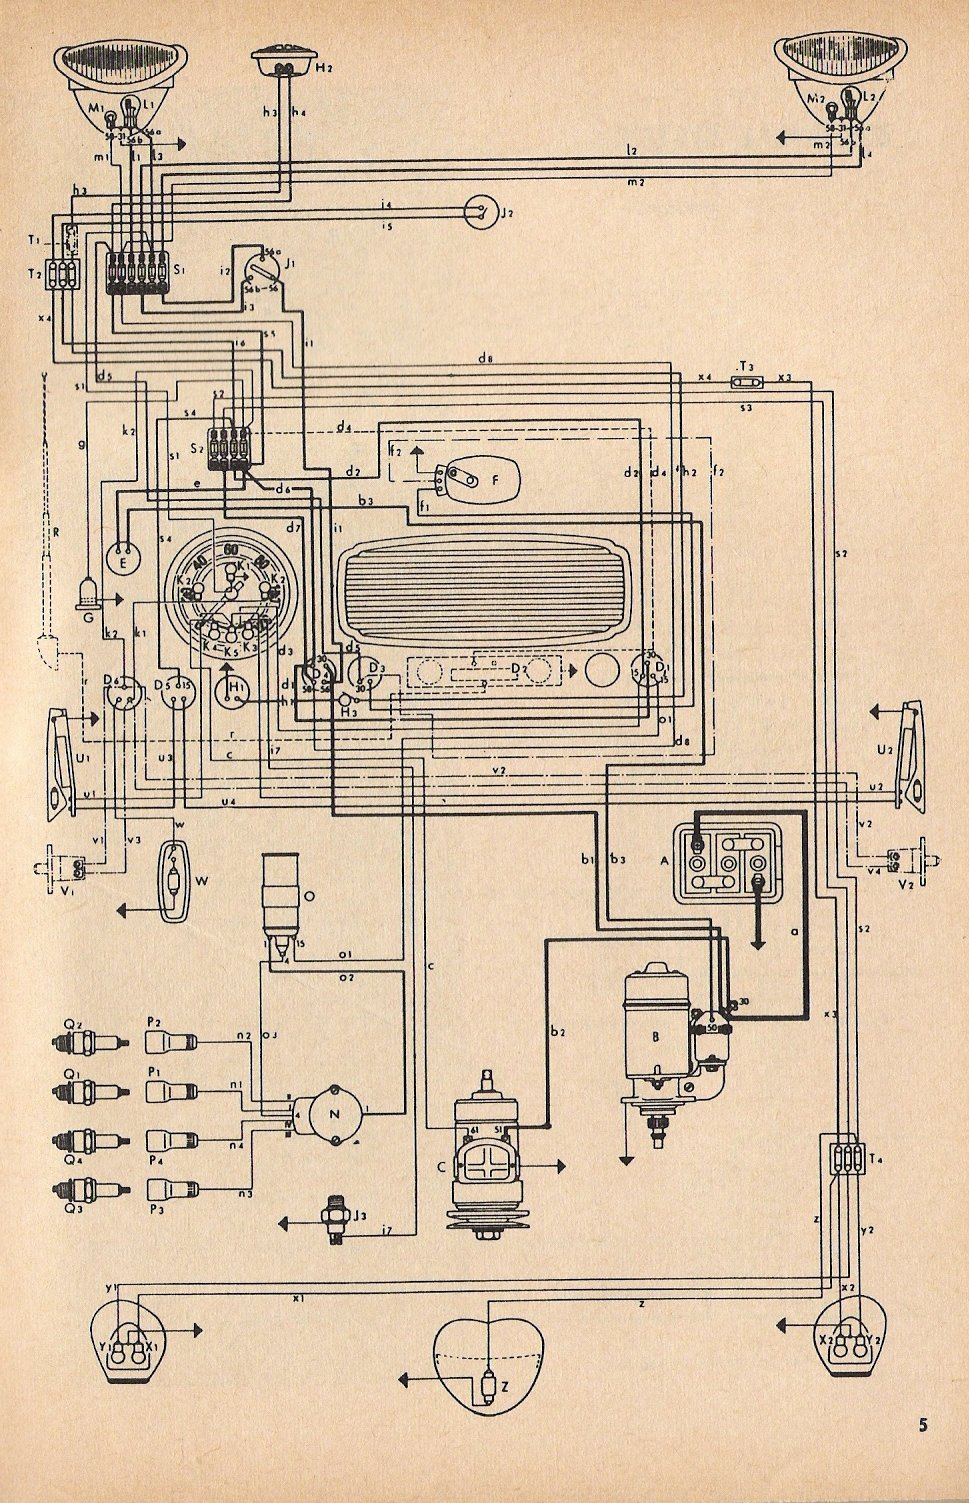 Engine Wire Diagram For 72 Beetle | Wiring Diagram on 72 vw generator wiring diagram, 1971 vw bus wiring diagram, 1972 vw wiring diagram, 1972 vw beetle engine diagram, 72 vw wiring light, vw bug wiring diagram, 72 vw bug convertible, volkswagen beetle diagram, 72 vw engine diagram, 72 karmann ghia wiring diagram, 72 vw beetle fuse diagram, vw bus engine diagram, air cooled vw wiring diagram, vw 1600 engine diagram, 1973 vw wiring diagram, vw alternator diagram, super beetle engine diagram, 72 toyota corolla wiring diagram,